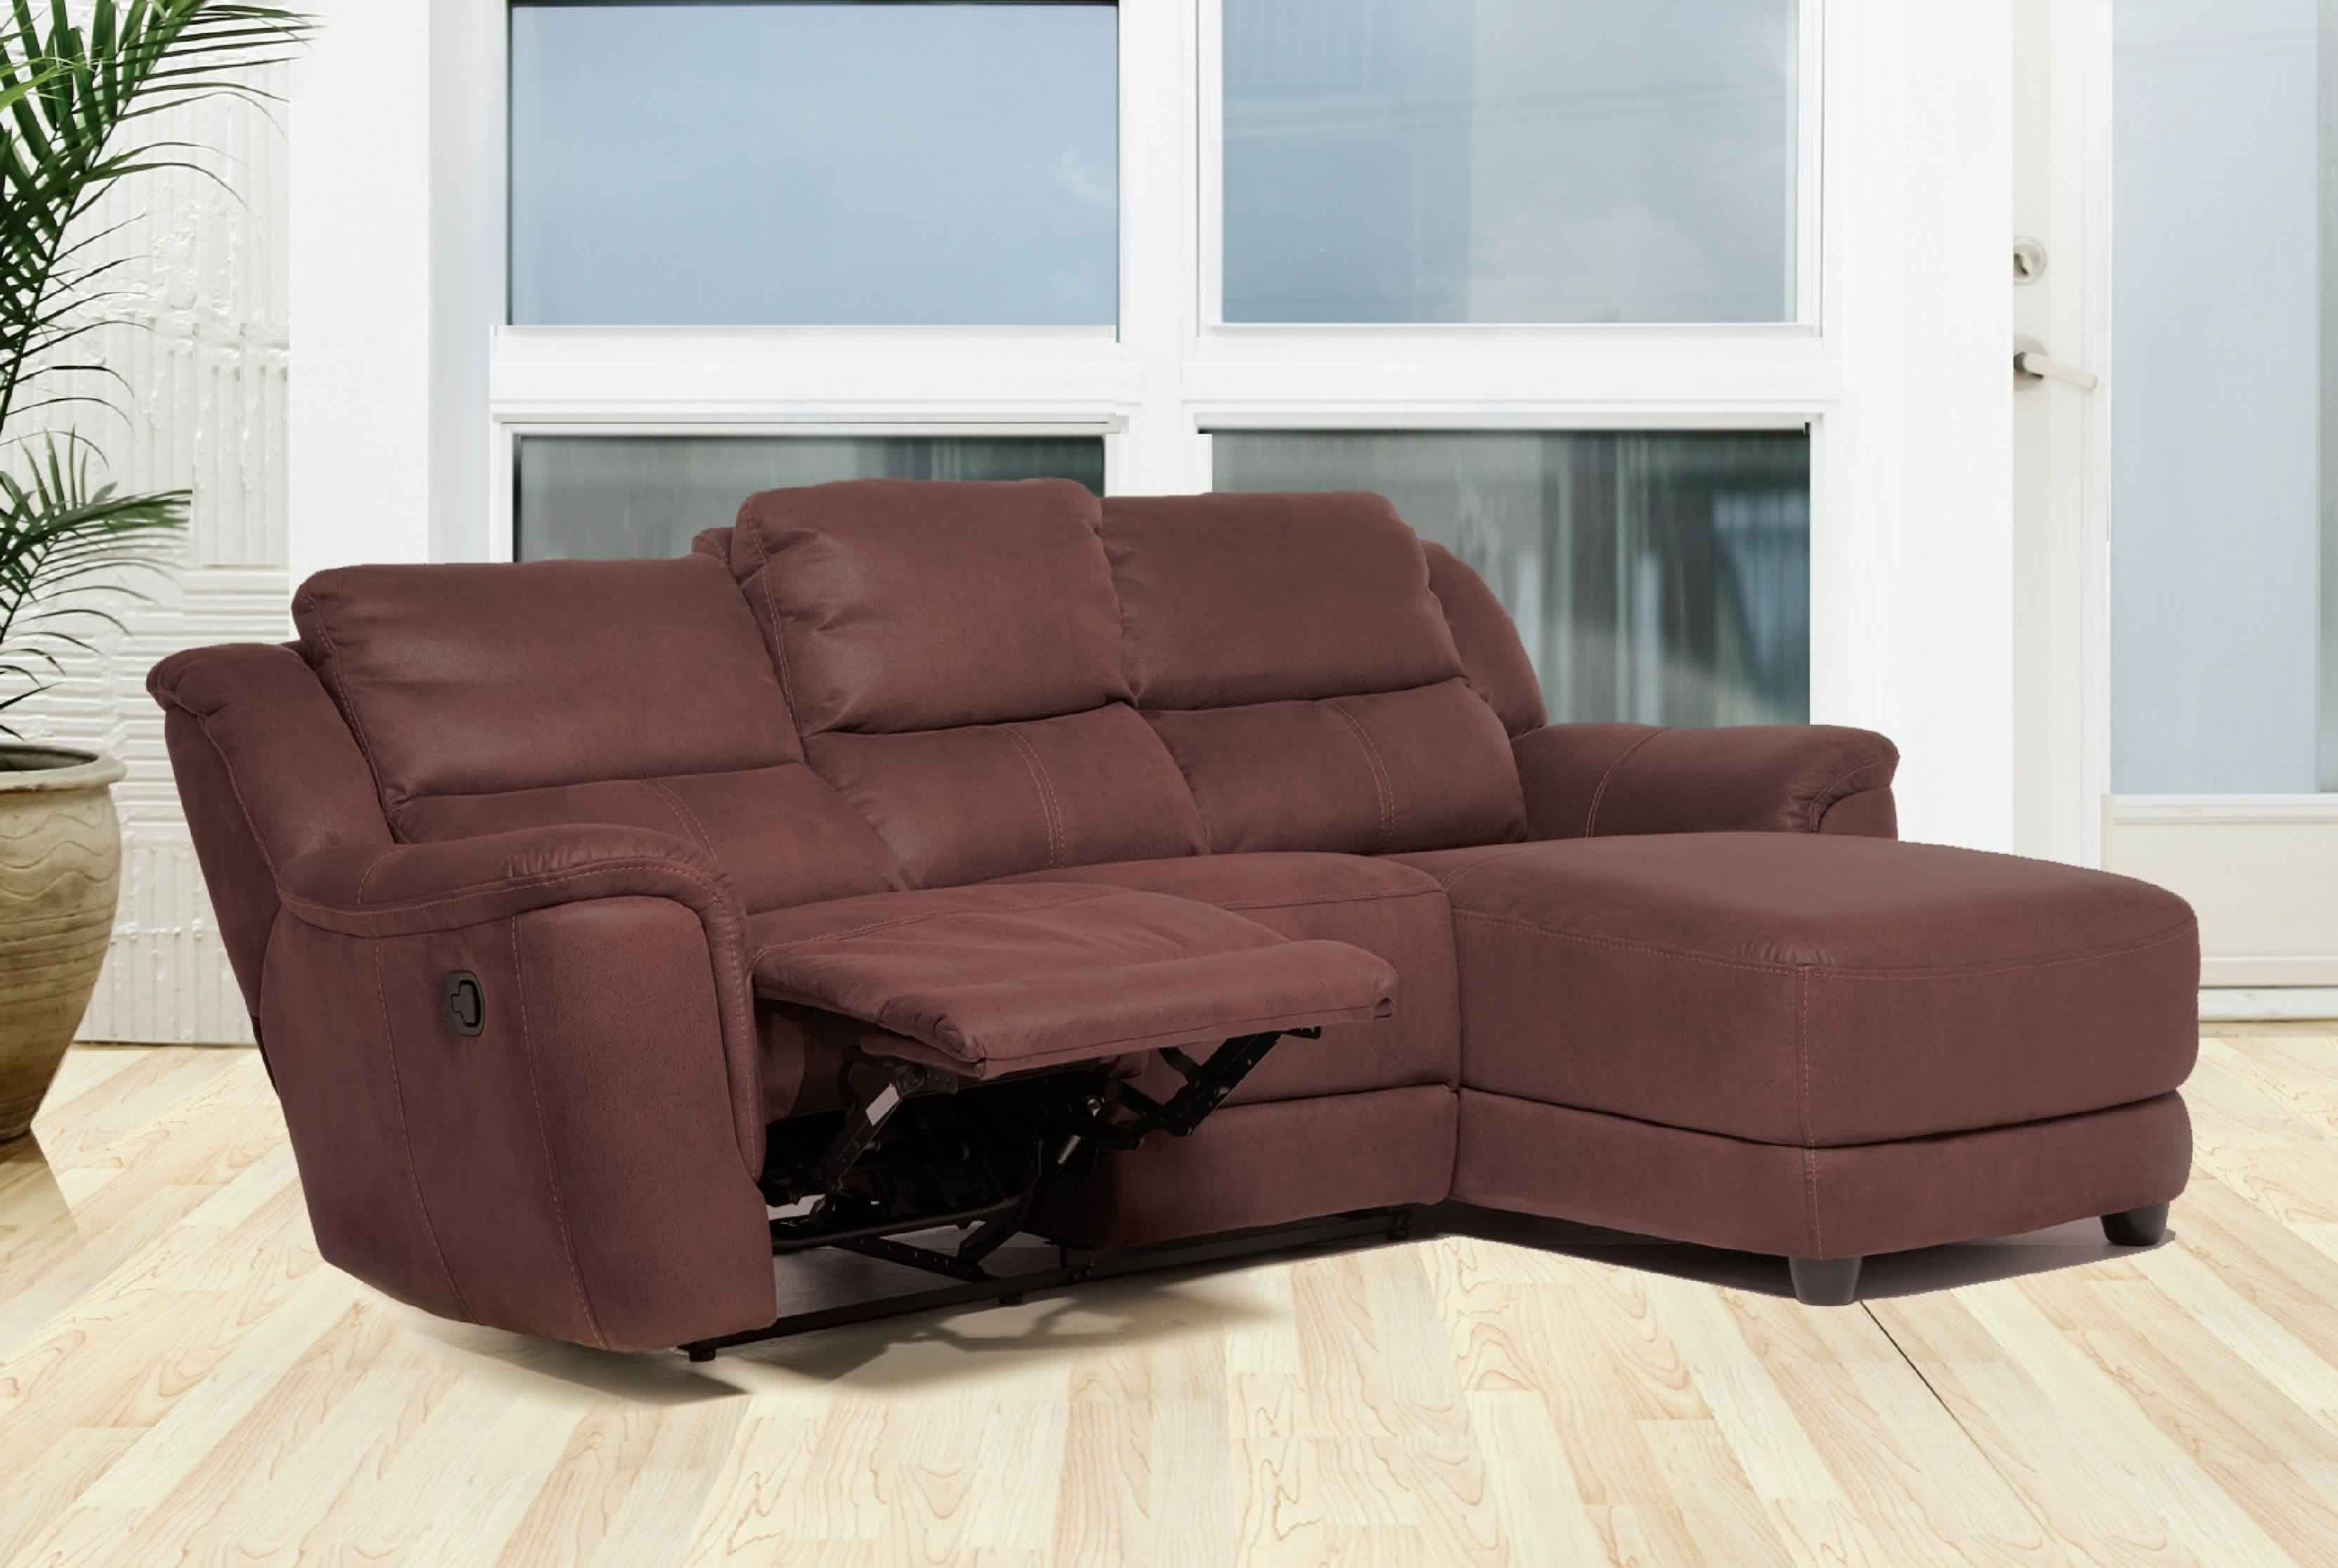 Picture of: ideas Italian Leather Seater Sofa